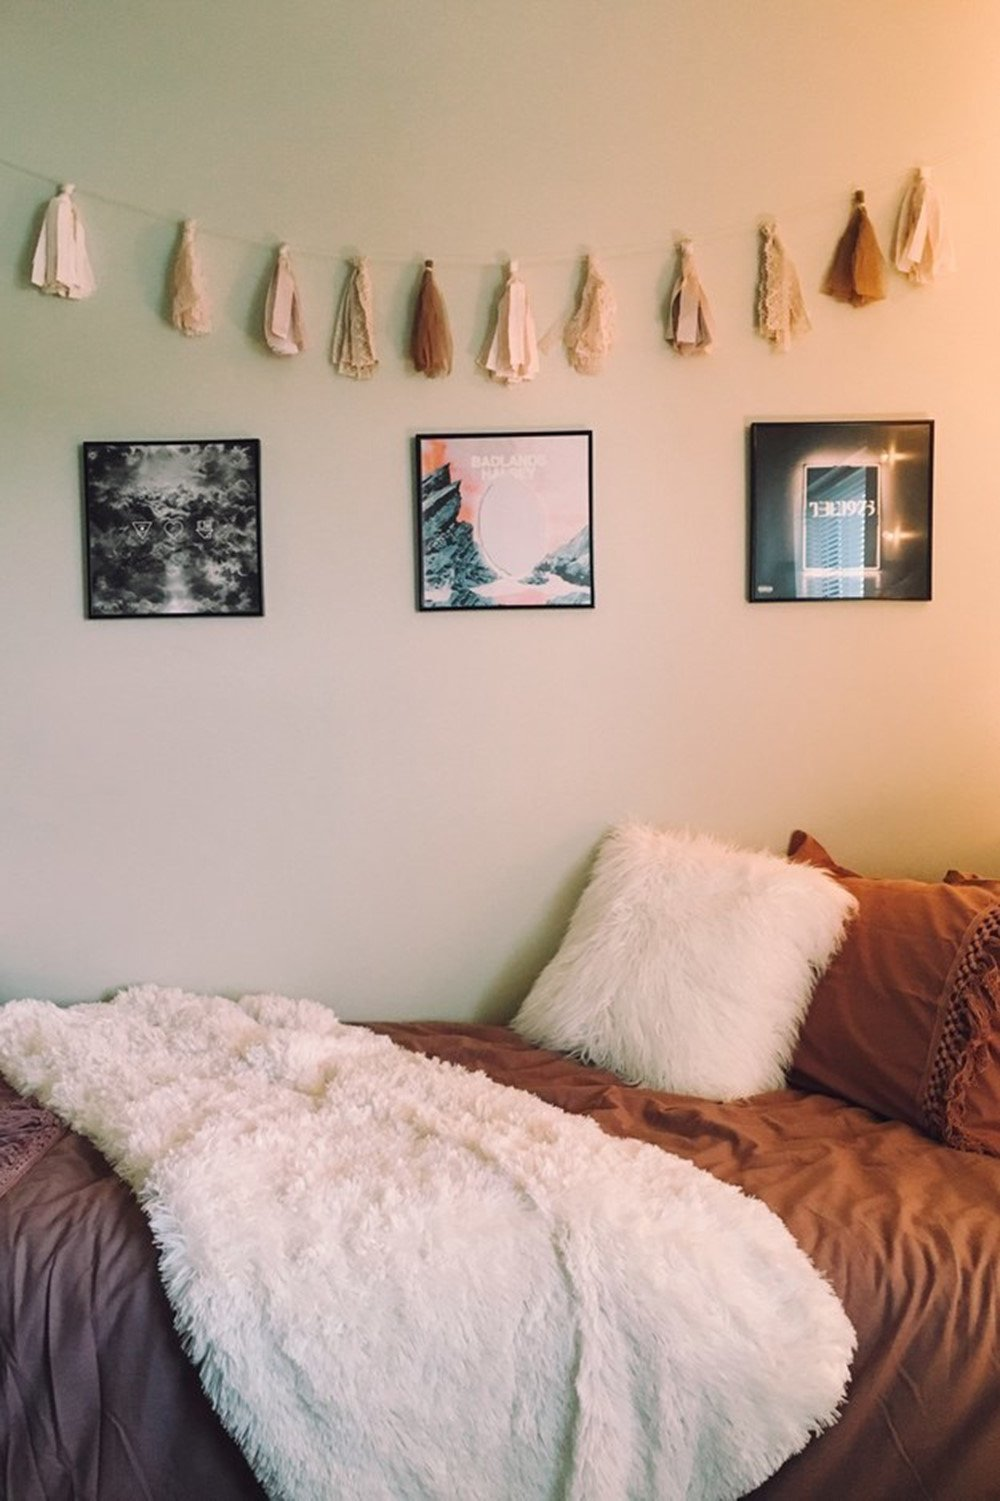 Best 15 Minimalist Room Decor Ideas That'll Motivate You To This Month